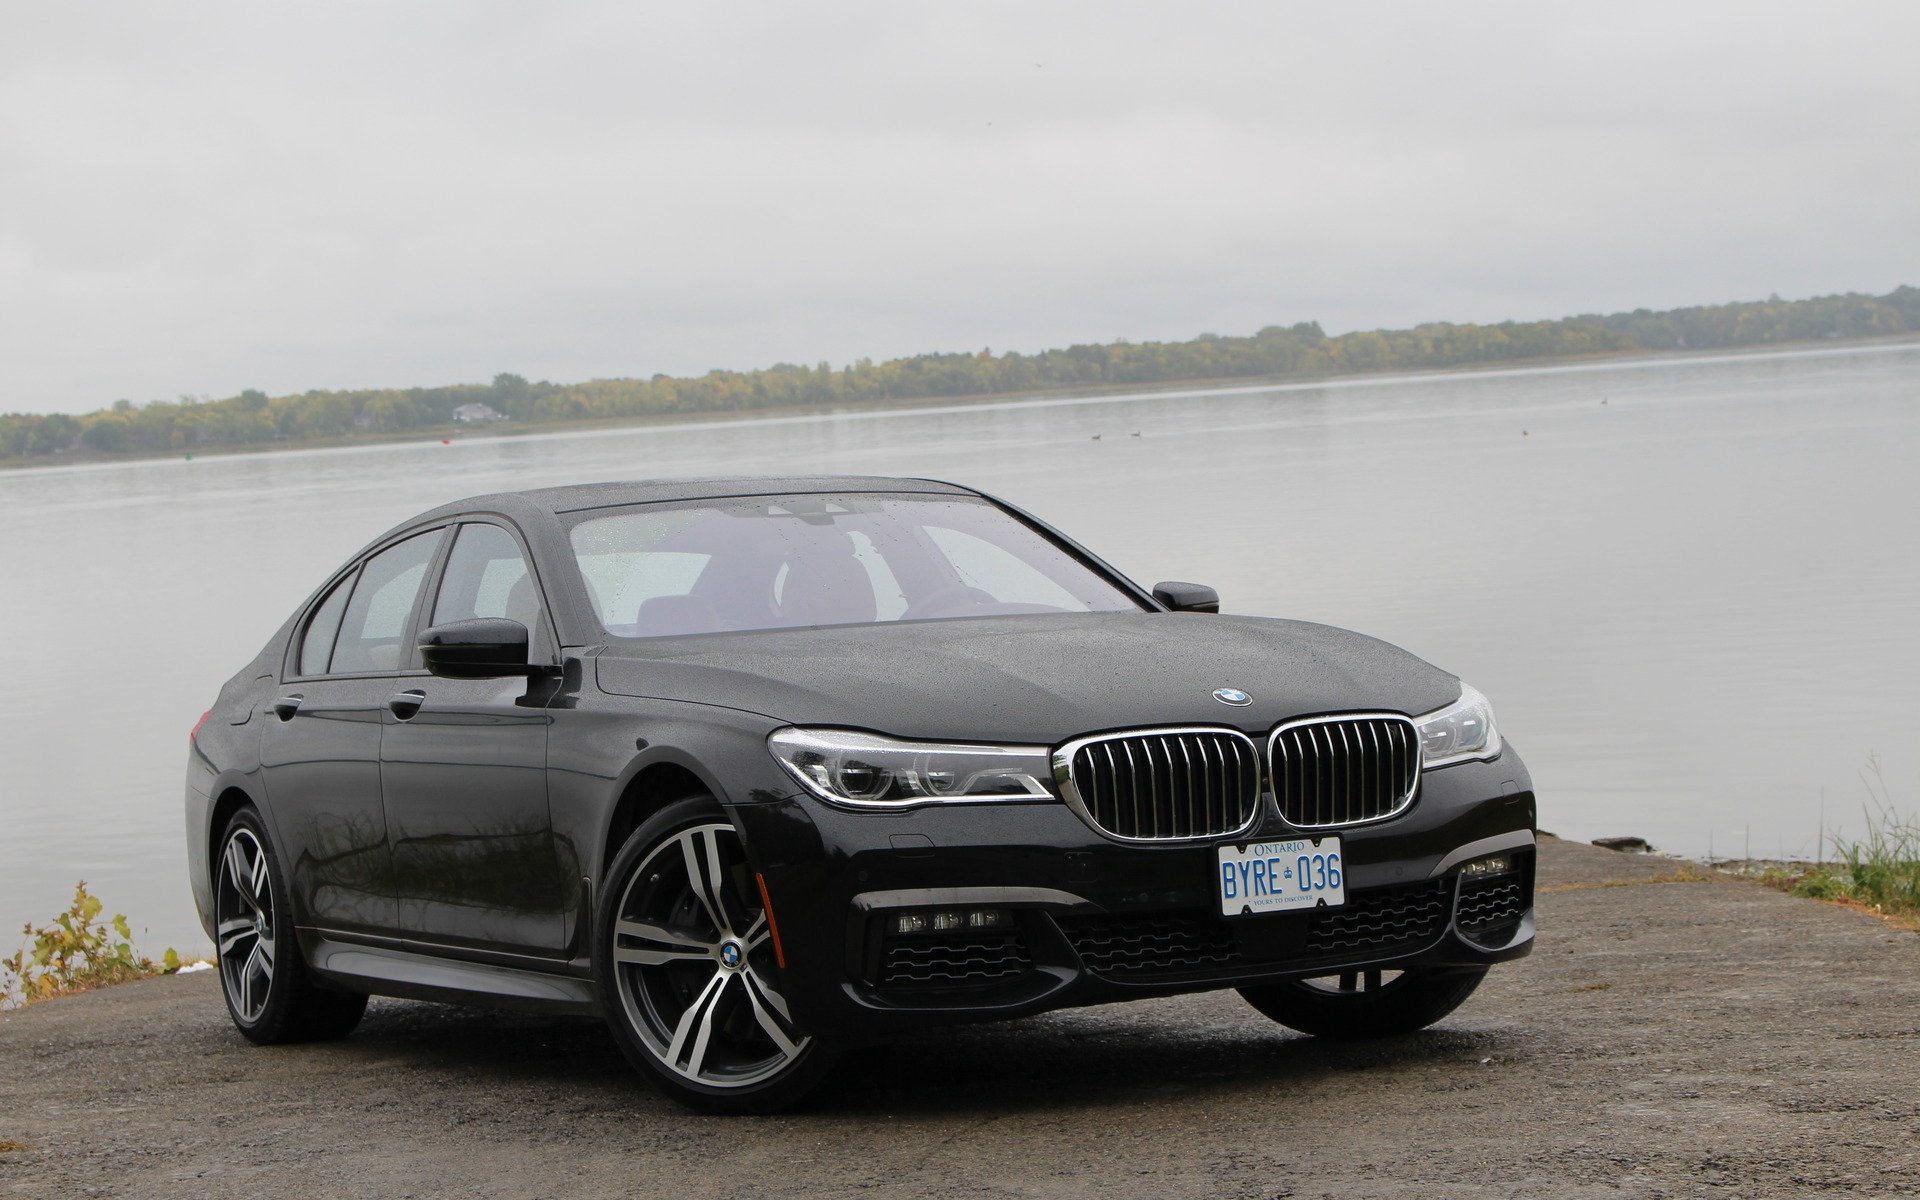 2016 Bmw 750i Xdrive The One To Beat For Now The Car Guide